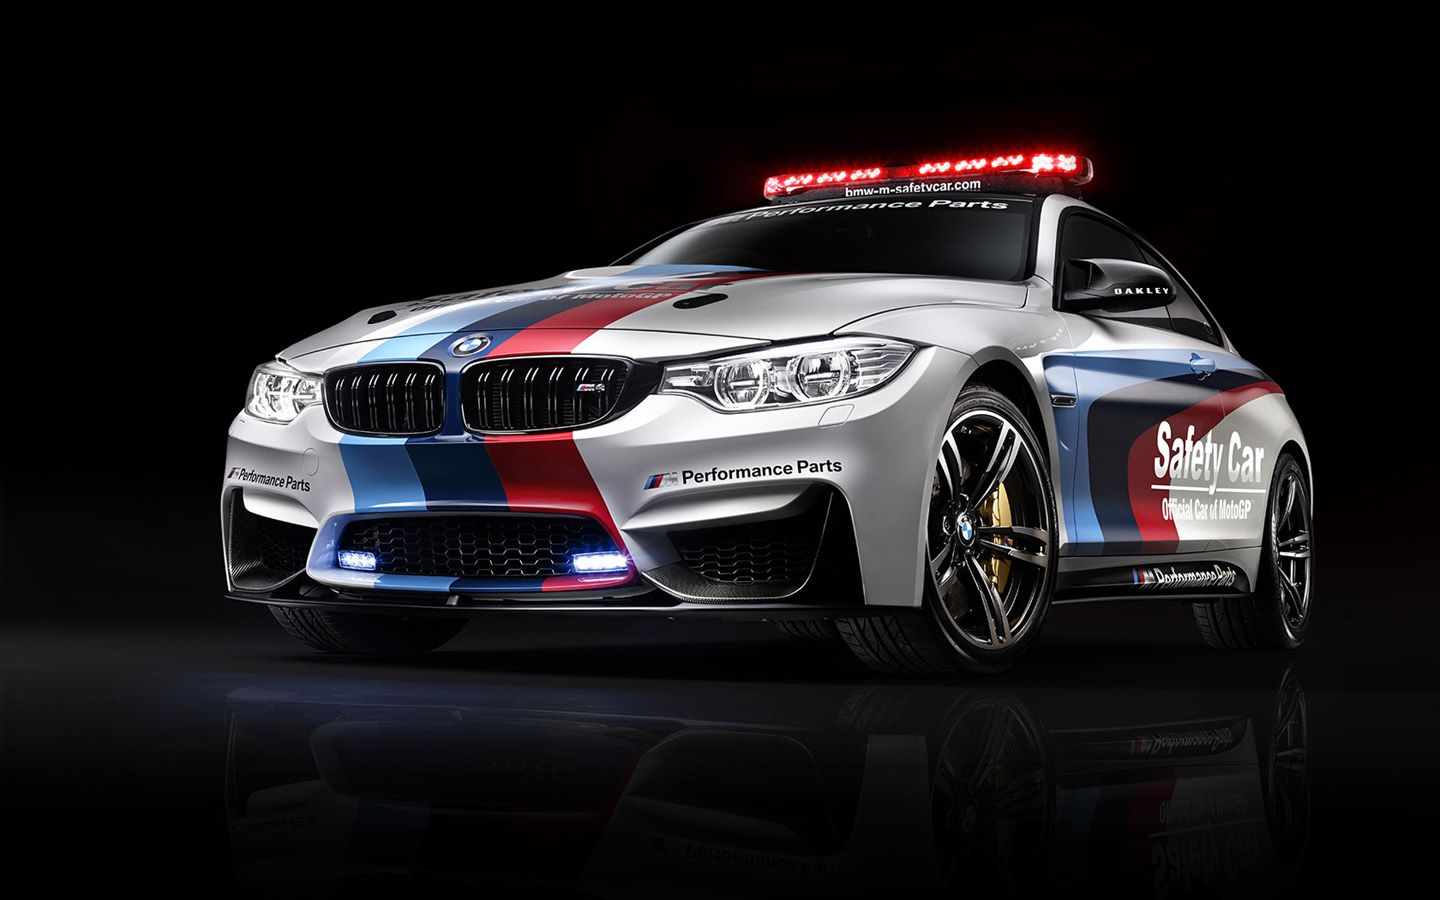 BMW M4 Coupe MotoGP Safety Car (With images) Bmw m4